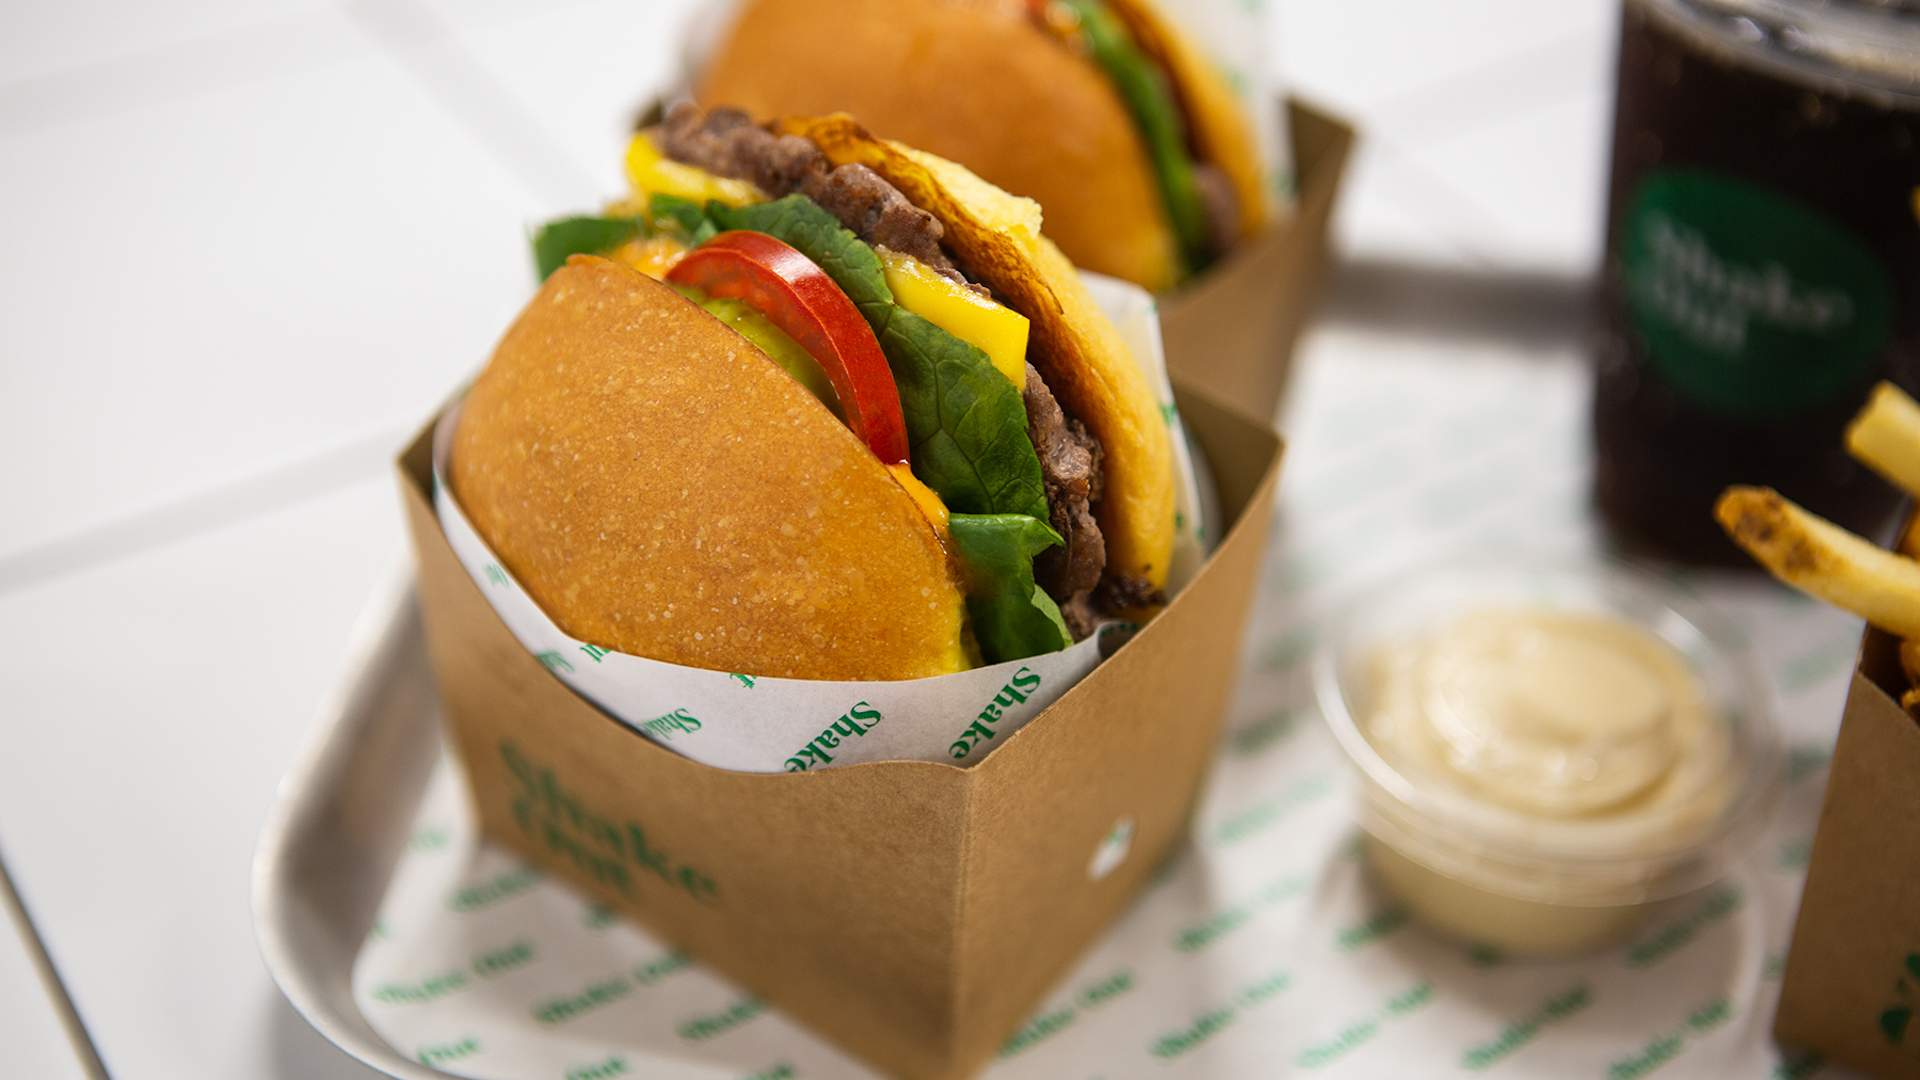 BurgerFuel Has Launched a New No-Frills Burger Brand